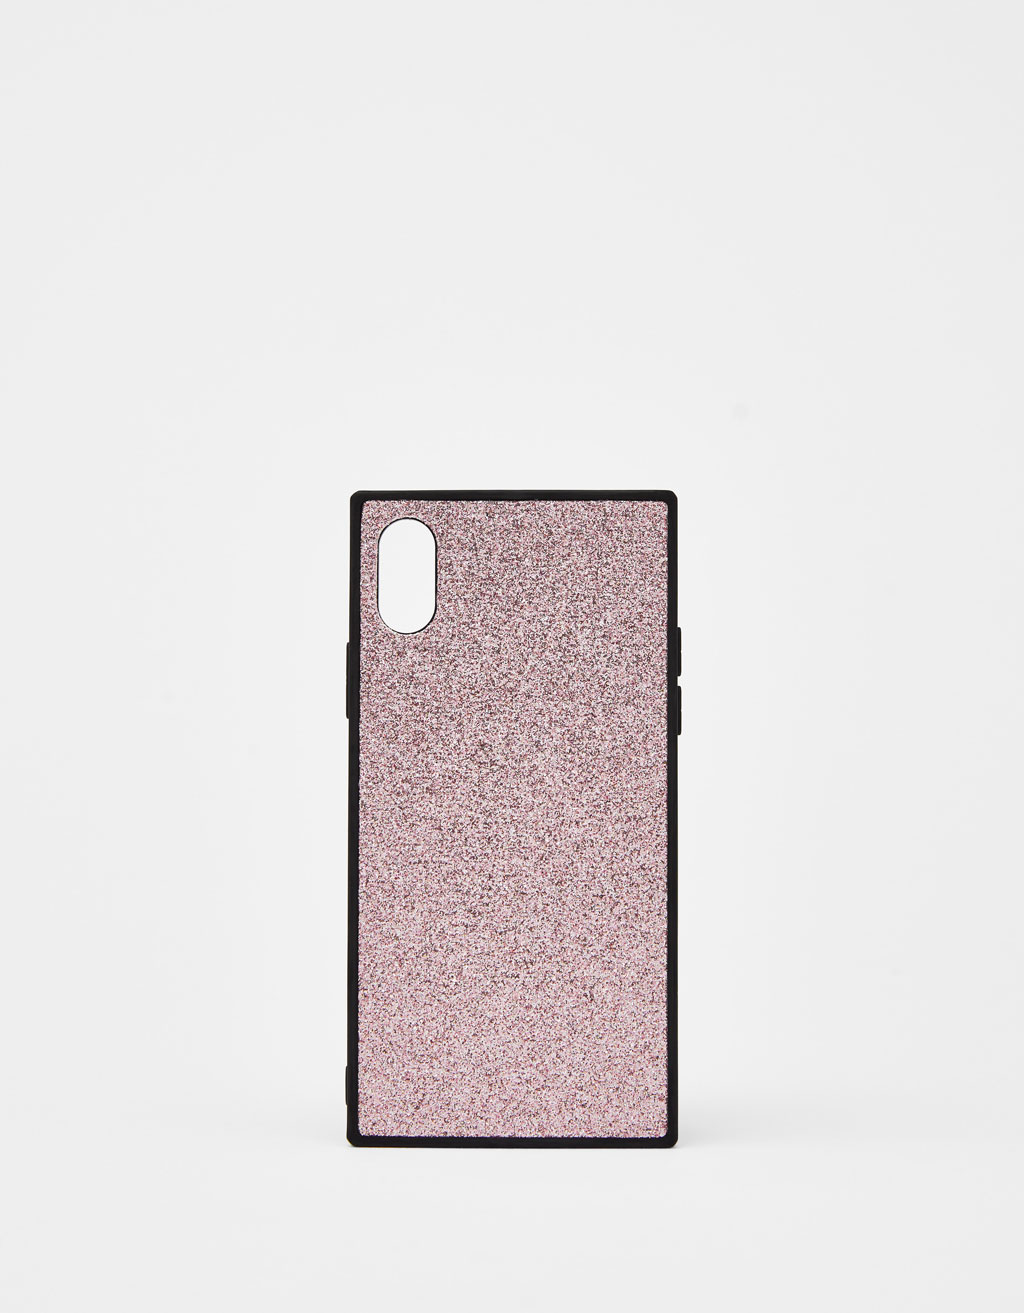 Coque à paillettes iPhone X